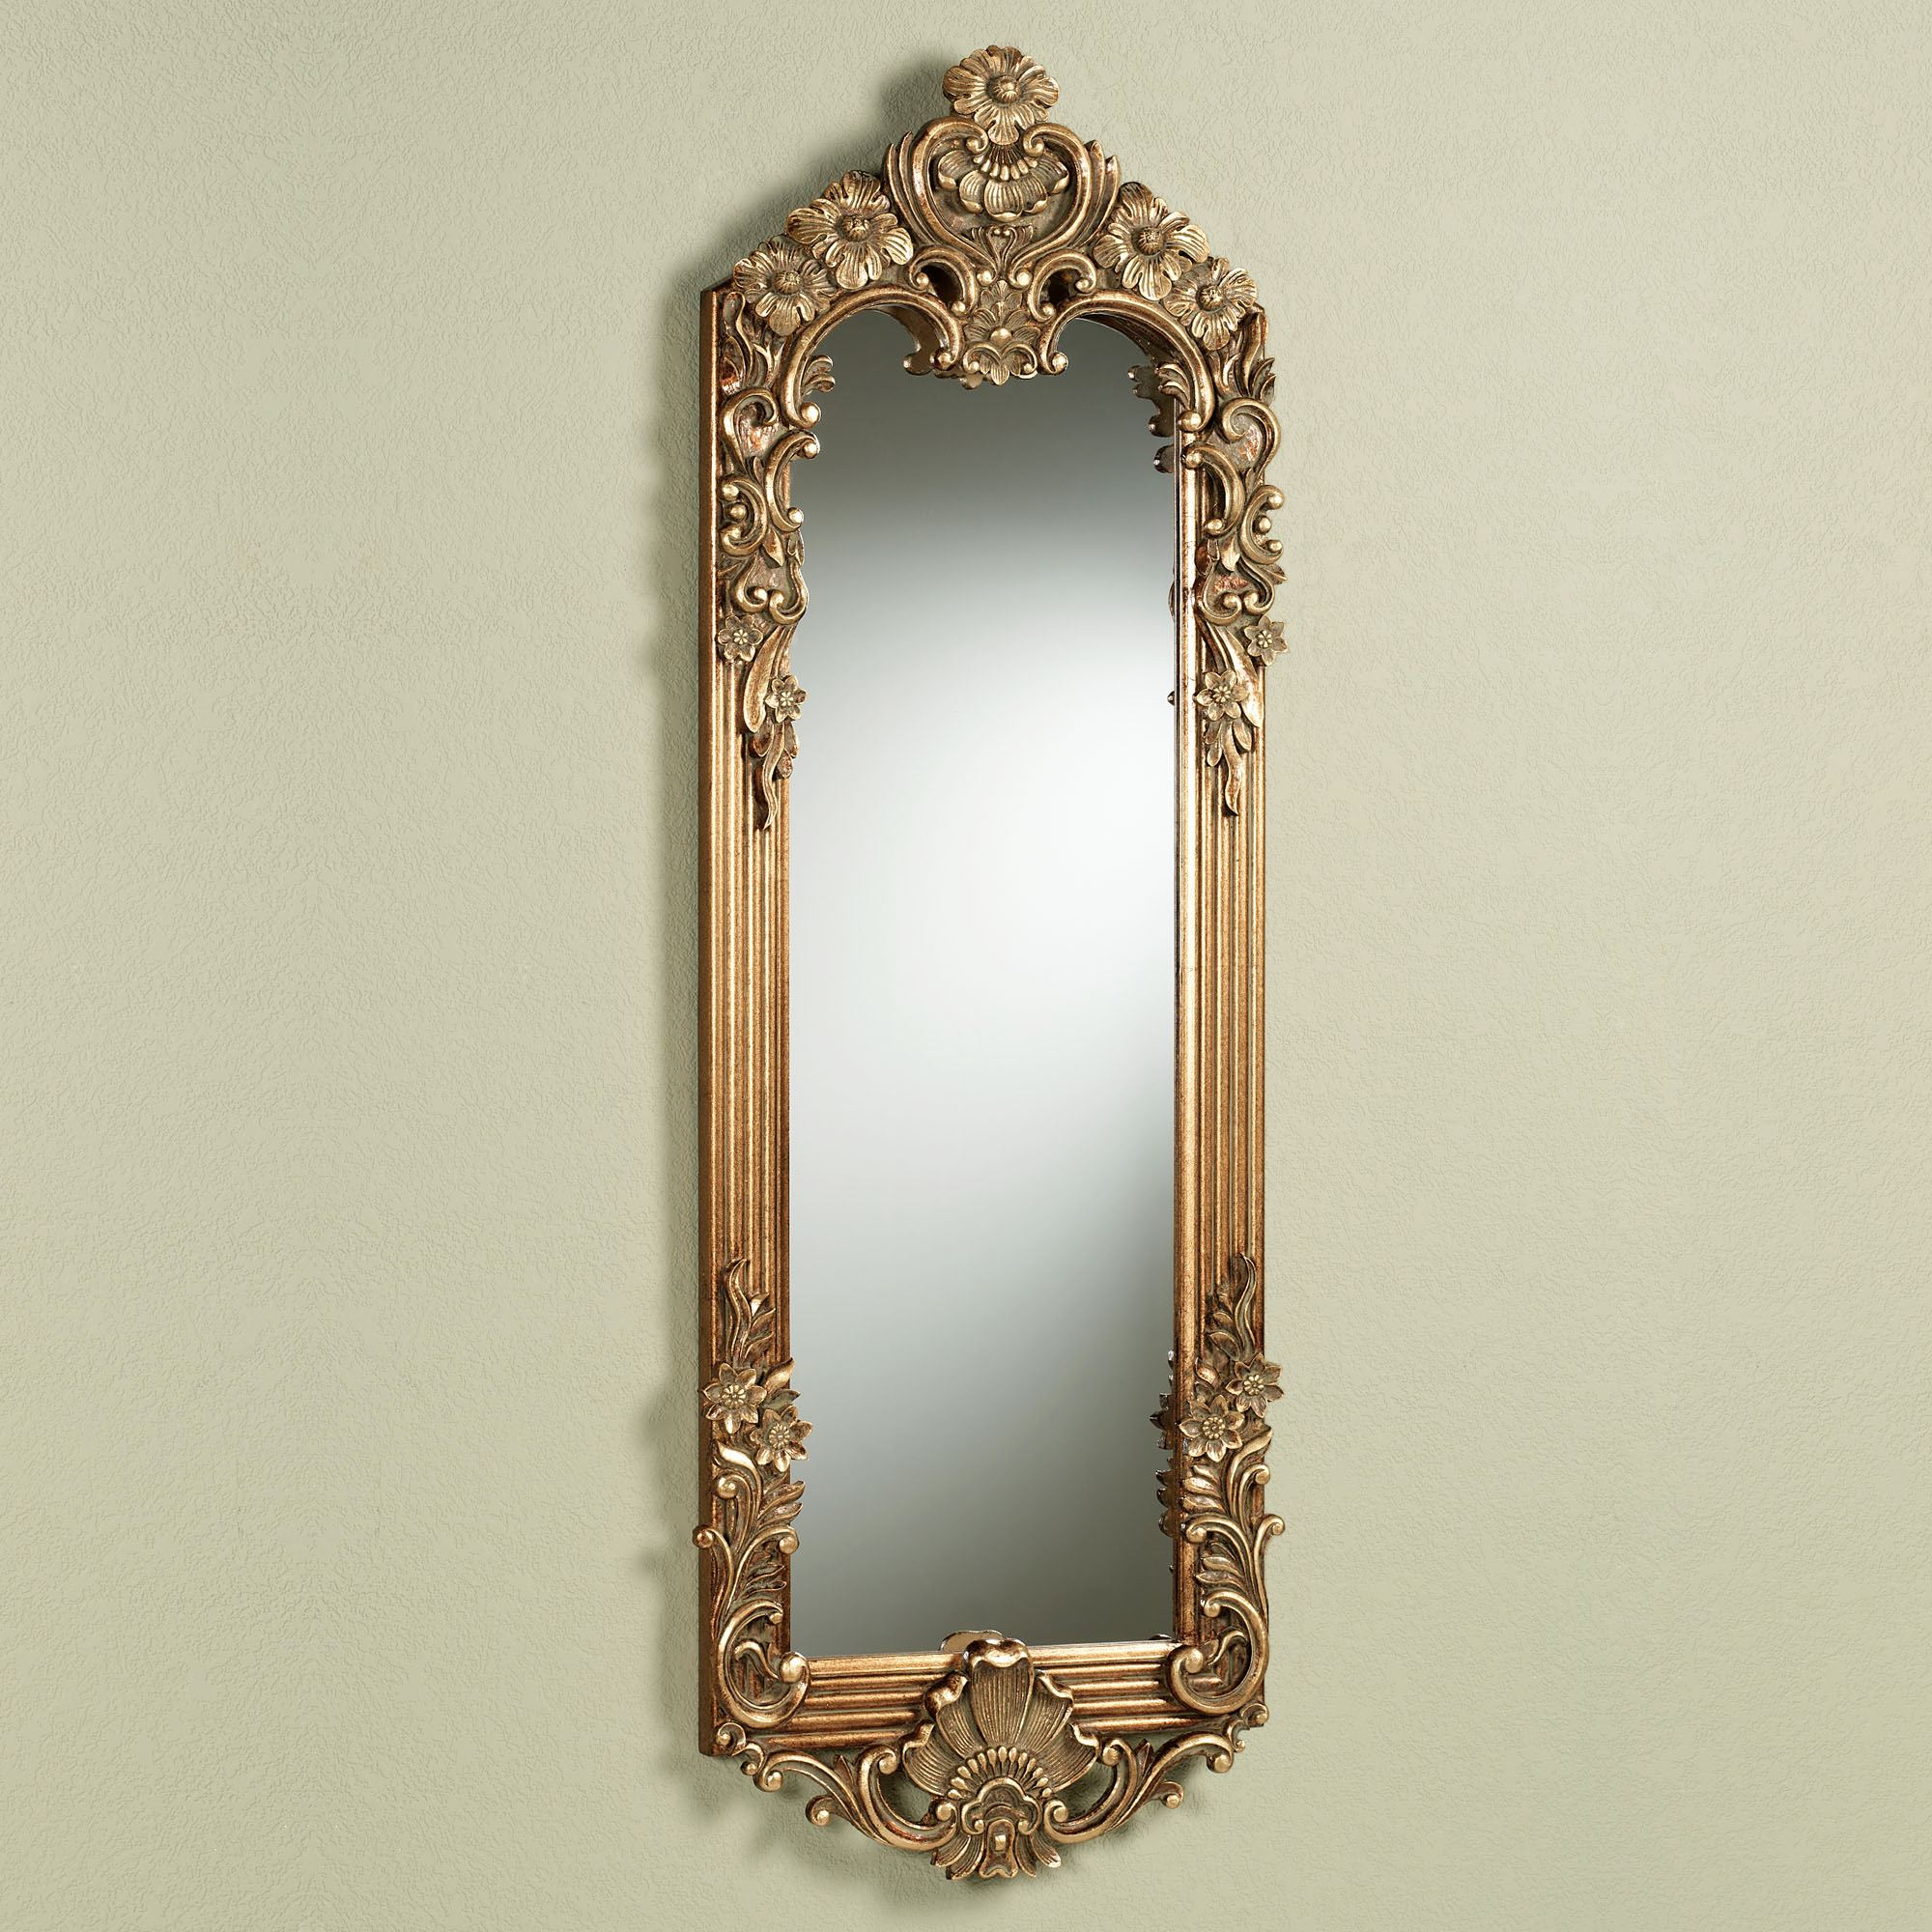 Gadsden Dark Gold Large Floral Wall Mirror Panel For Traditional Metal Wall Mirrors (View 16 of 30)